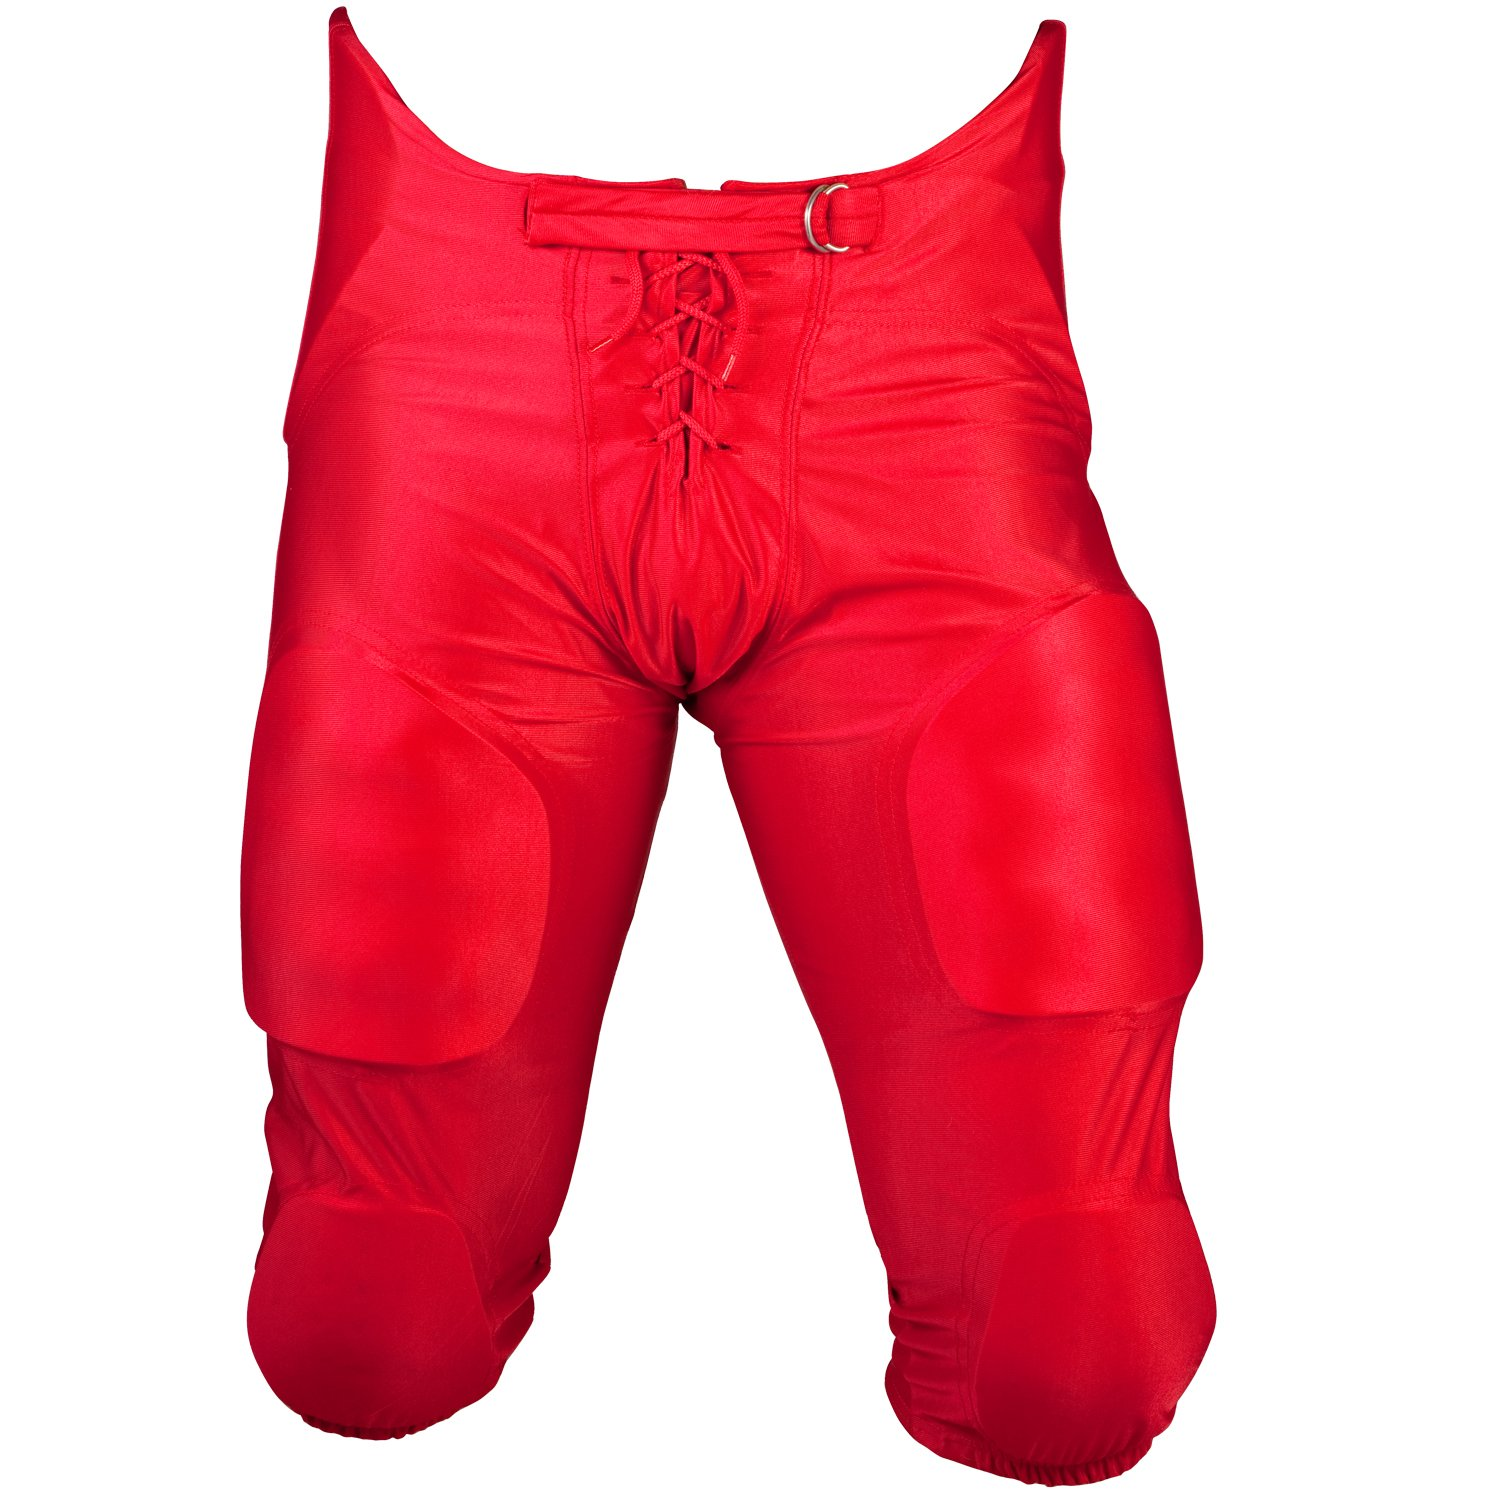 (Medium, Red) - Cramer Football Game Pants, 7 Pad, Adult and Youth Size, Assorted Colours B00LPABE18